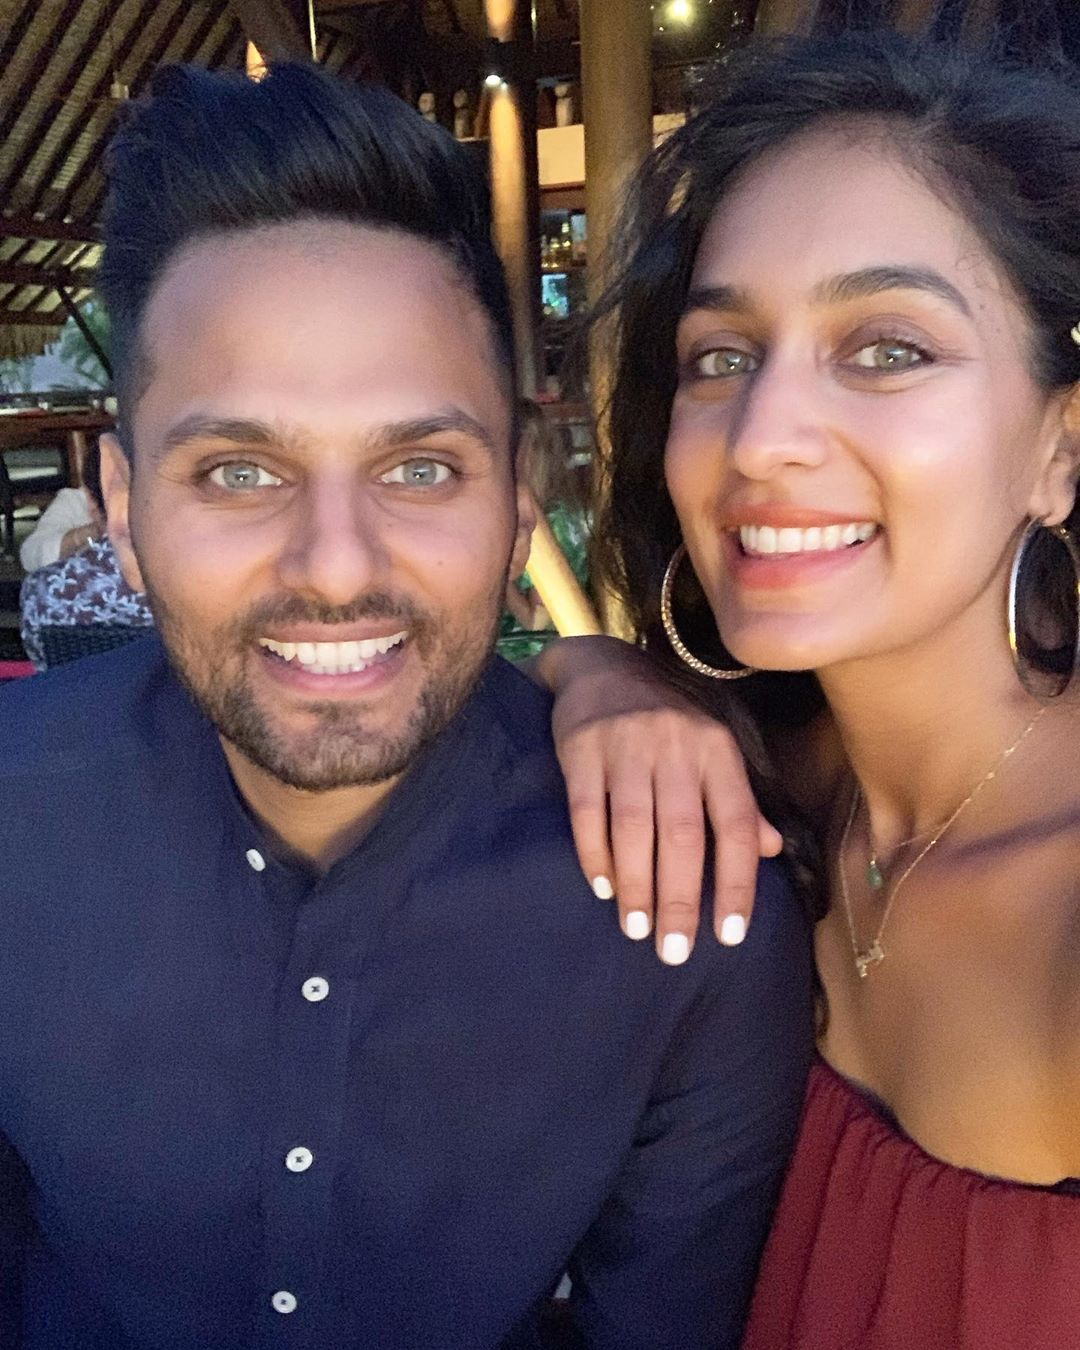 Shetty with his wife Radhi